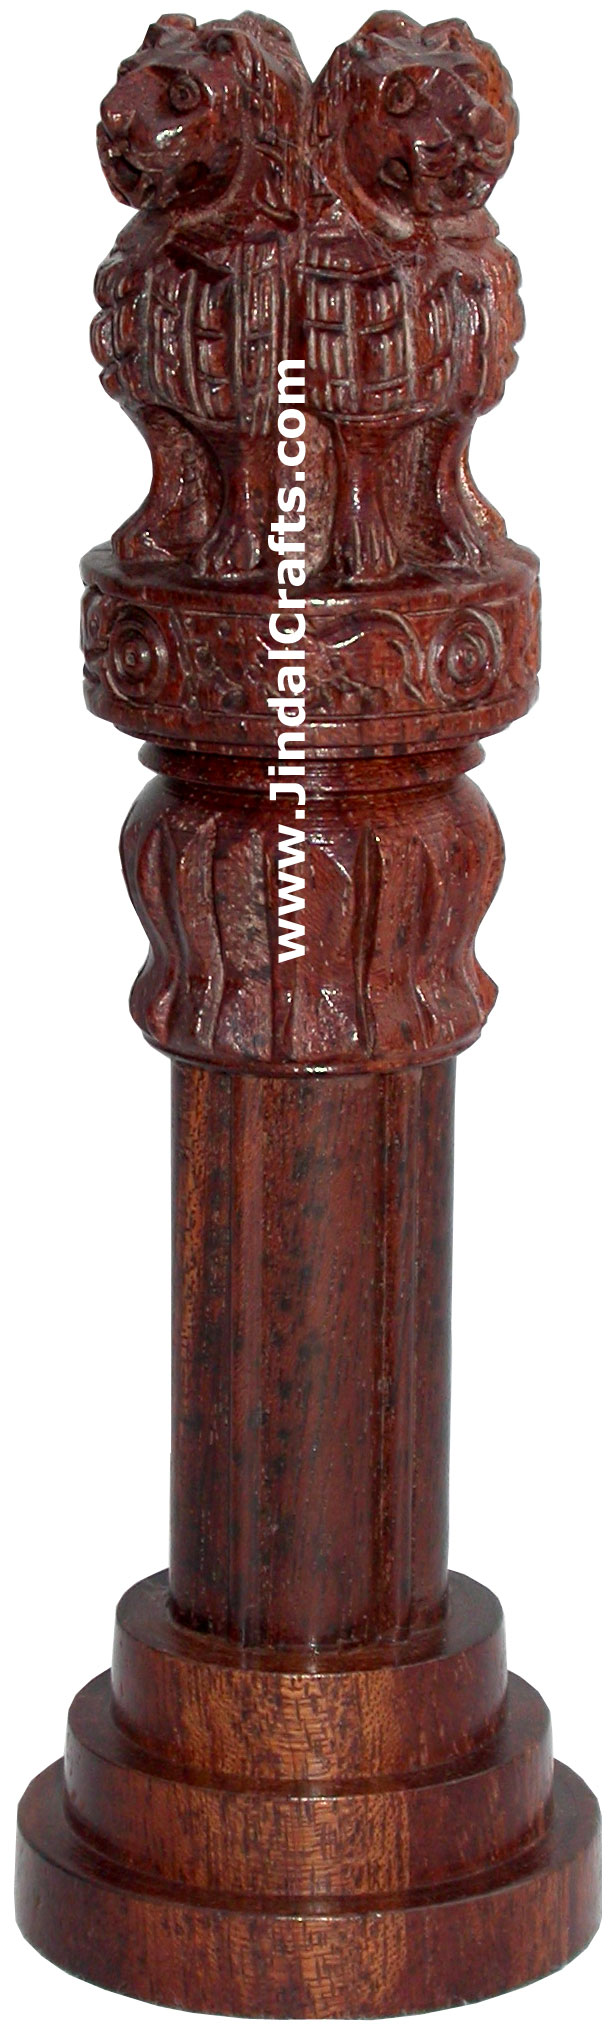 Ashok Stambh Ashoka Pillar National Symbol India Crafts